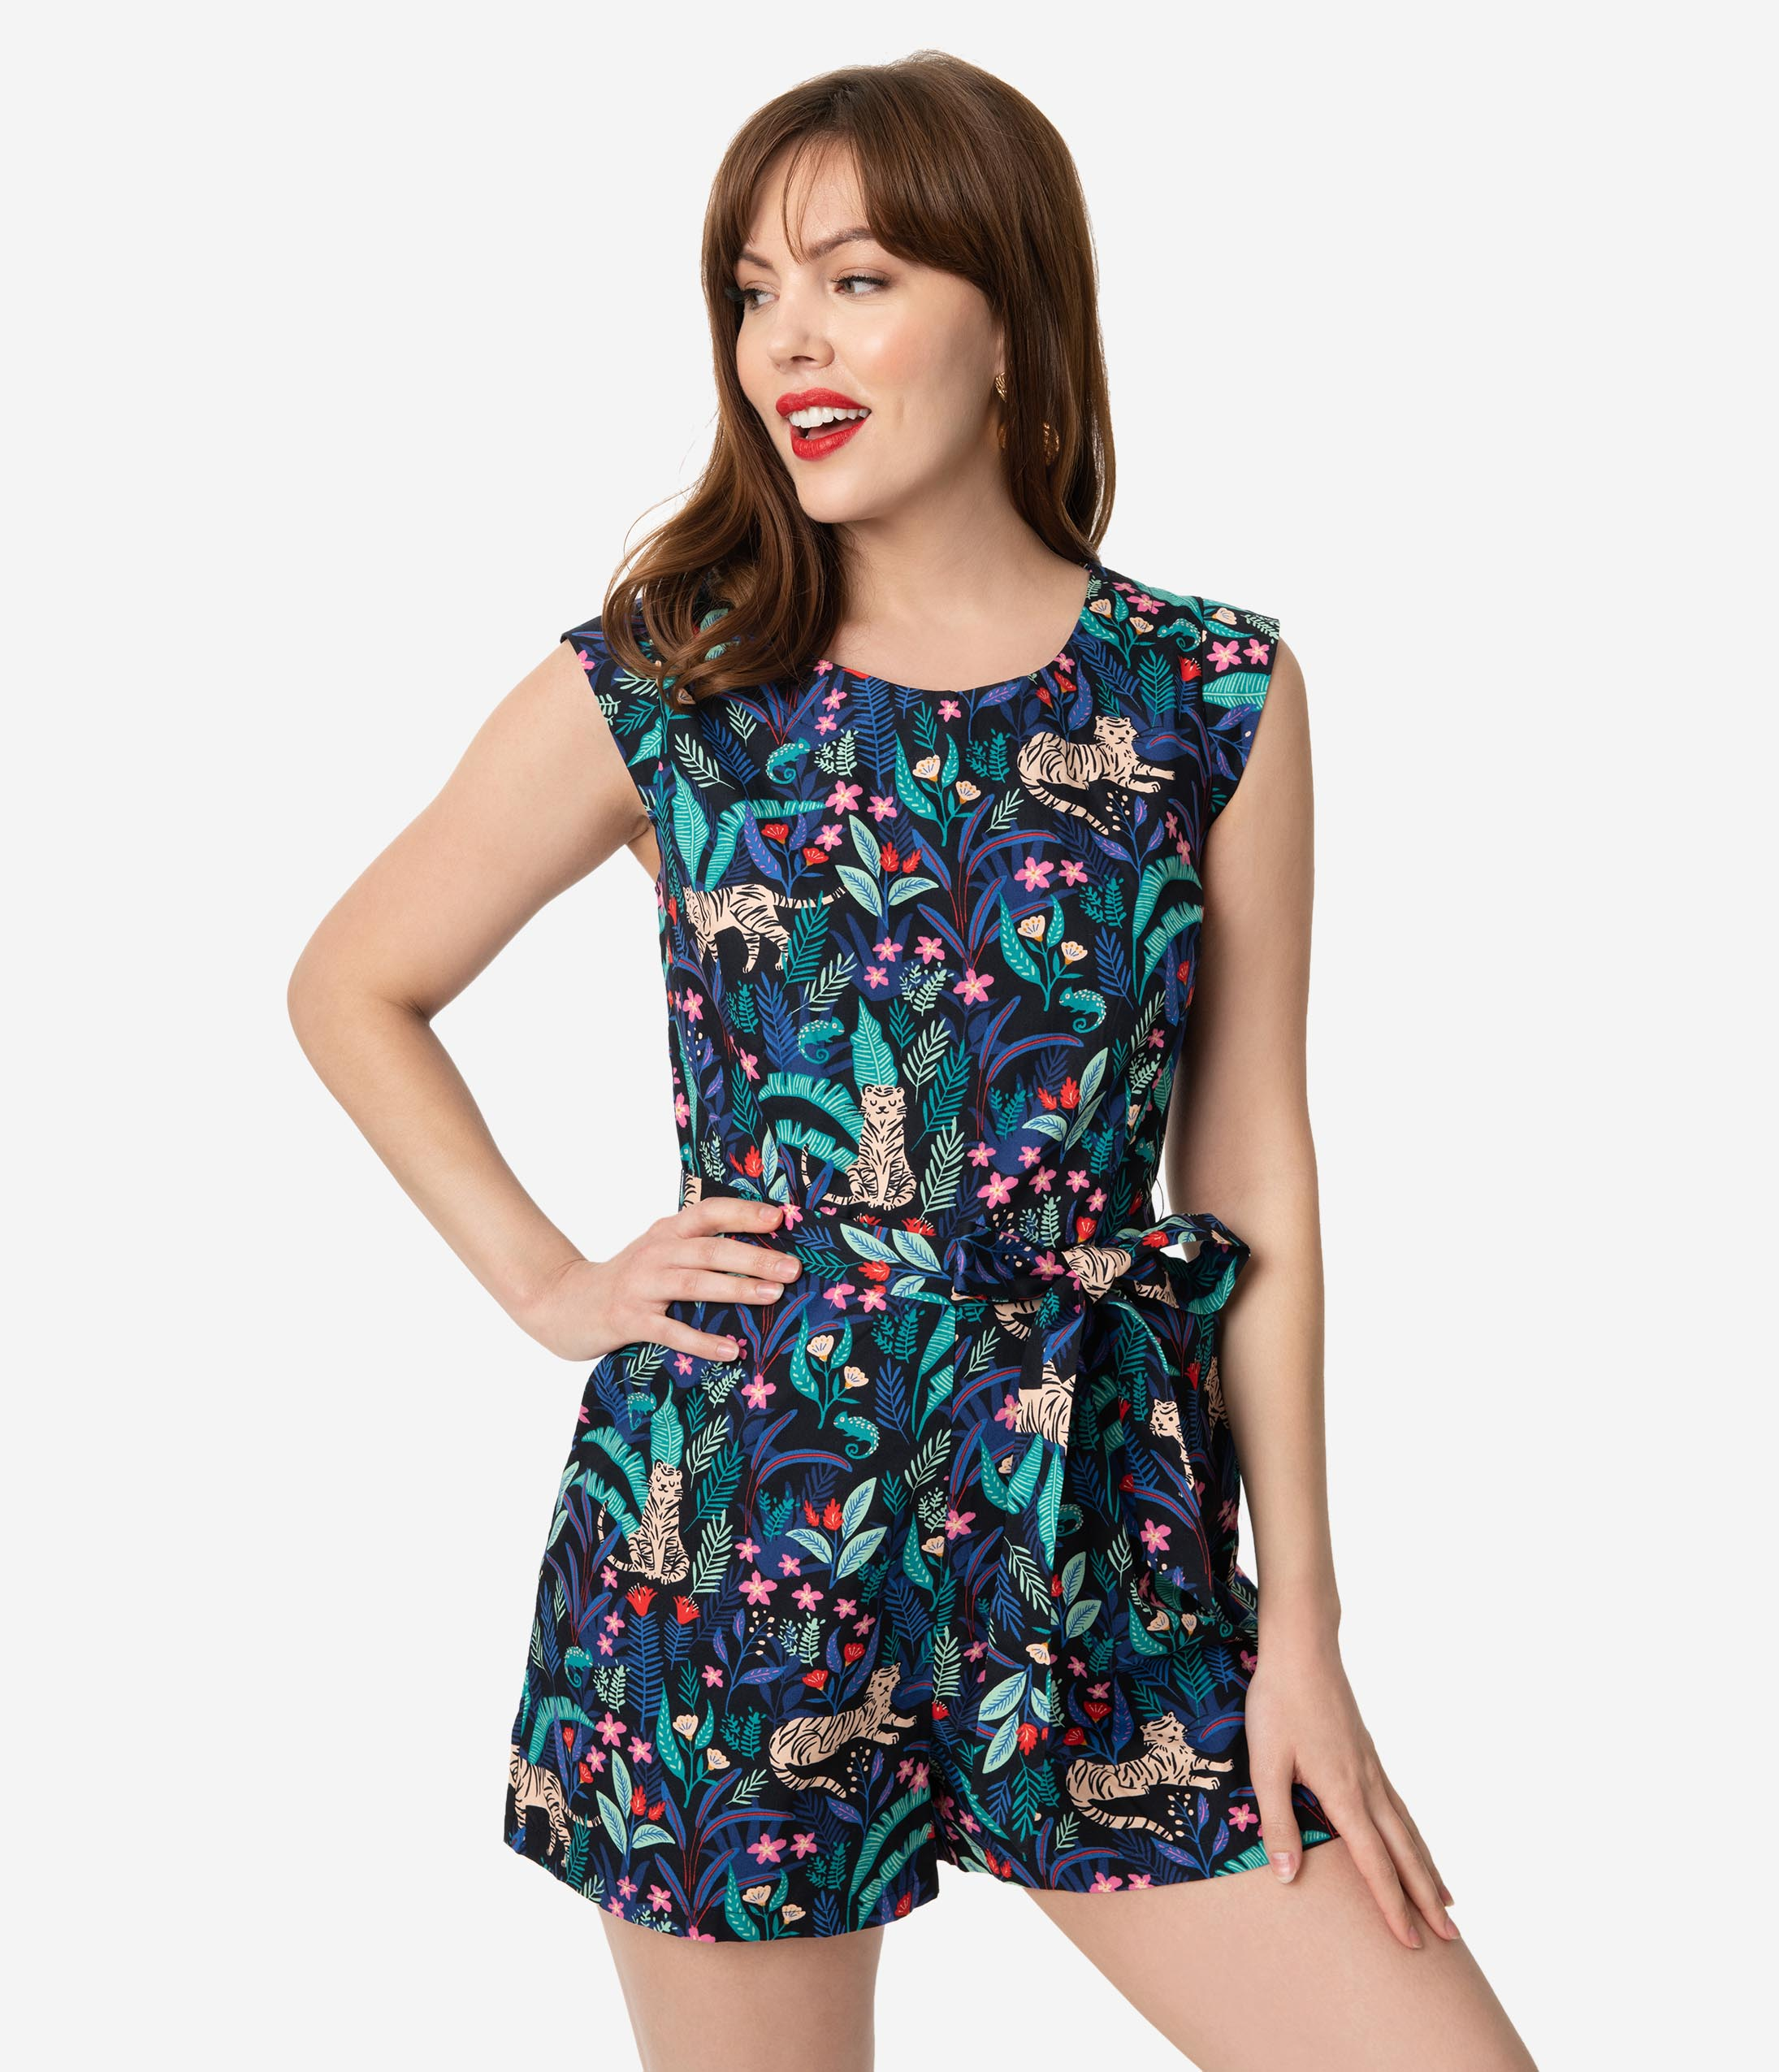 What Did Women Wear in the 1950s? 1950s Fashion Guide Retro Style Navy Tropical Tiger  Chameleon Print Playsuit $78.00 AT vintagedancer.com